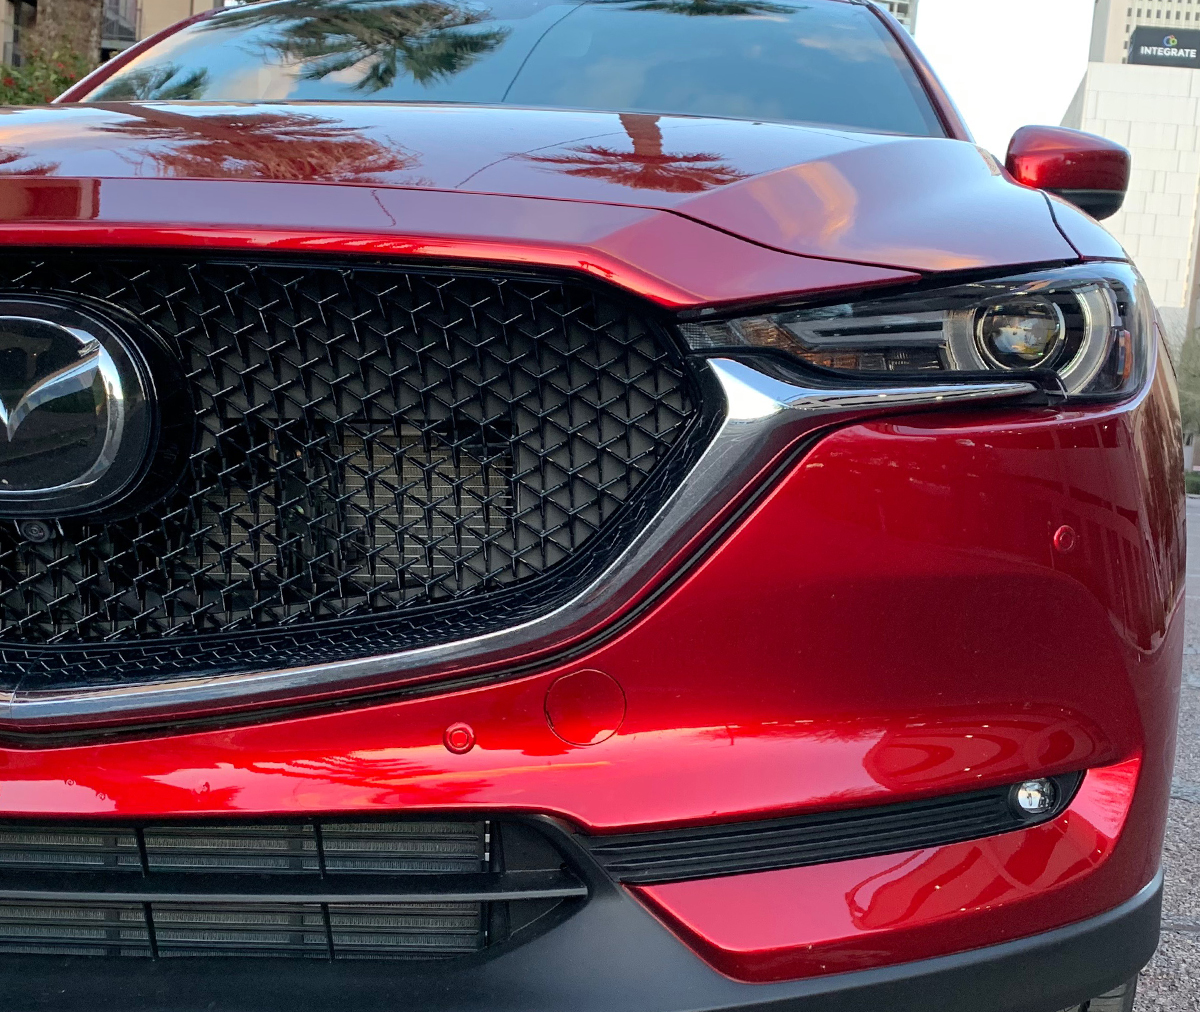 Price Of New Mazda Cx 5: Mazda CX-5 Continues To Punch Above Its Weight In Compact